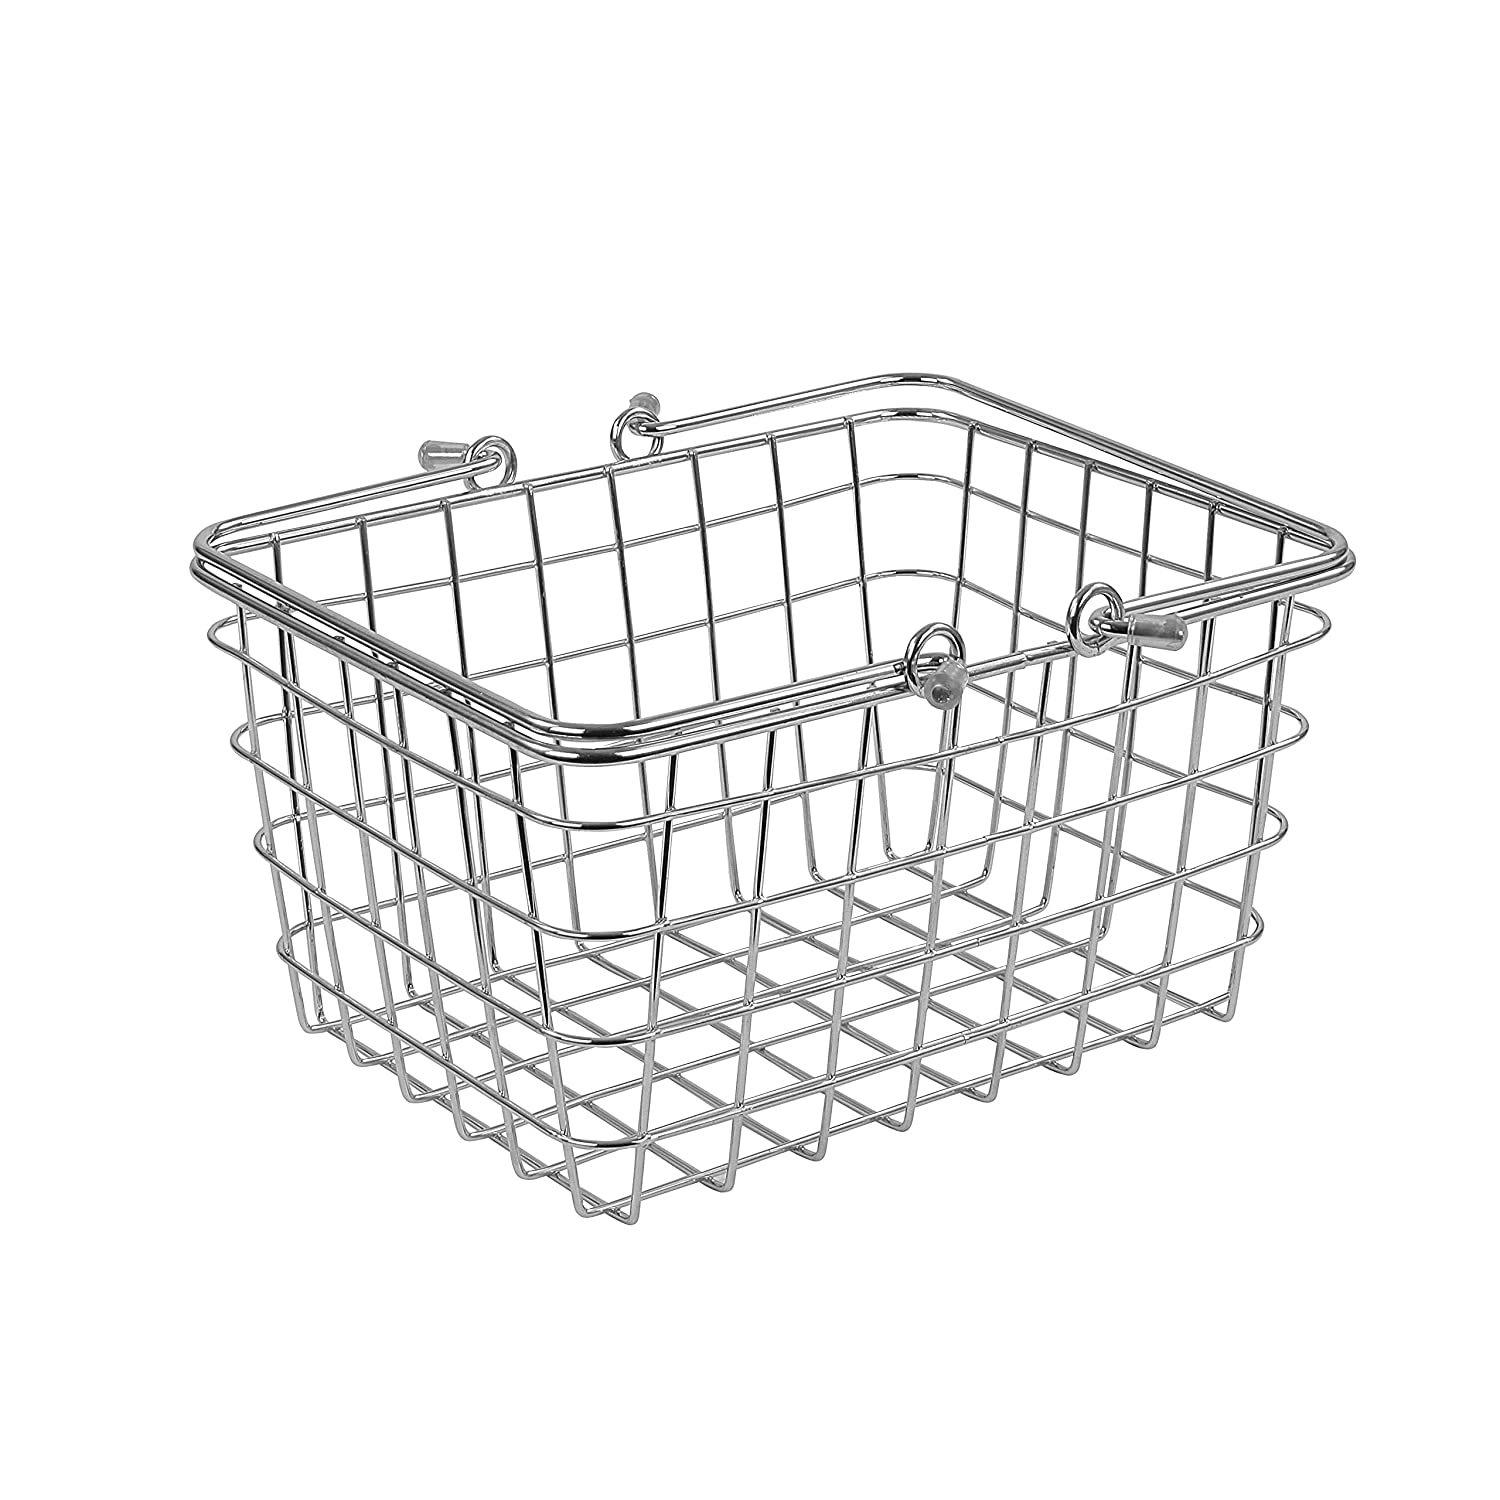 Spectrum 43070 Small Wire Basket, Chrome